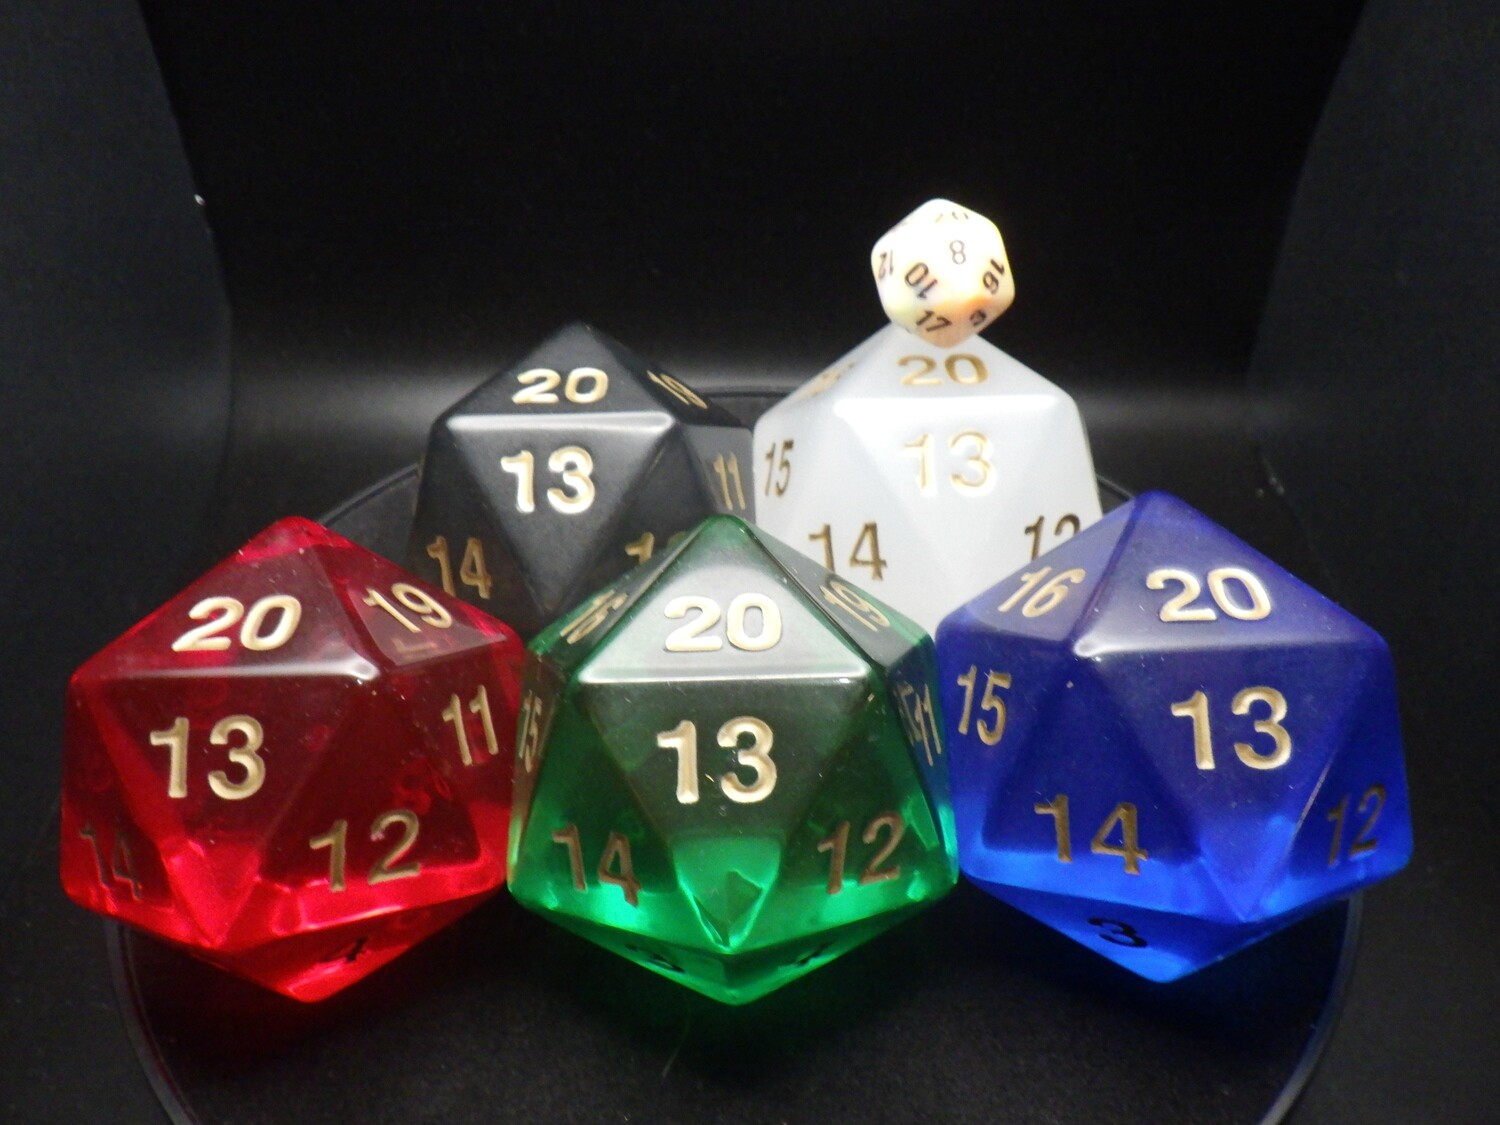 Huge 55mm Transparent D20 Countdown Die Extra Large Giant Twenty Sided Counter Dice RPG Tabletop Roleplay CCG Cards Magic Board Token Marker Dungeon